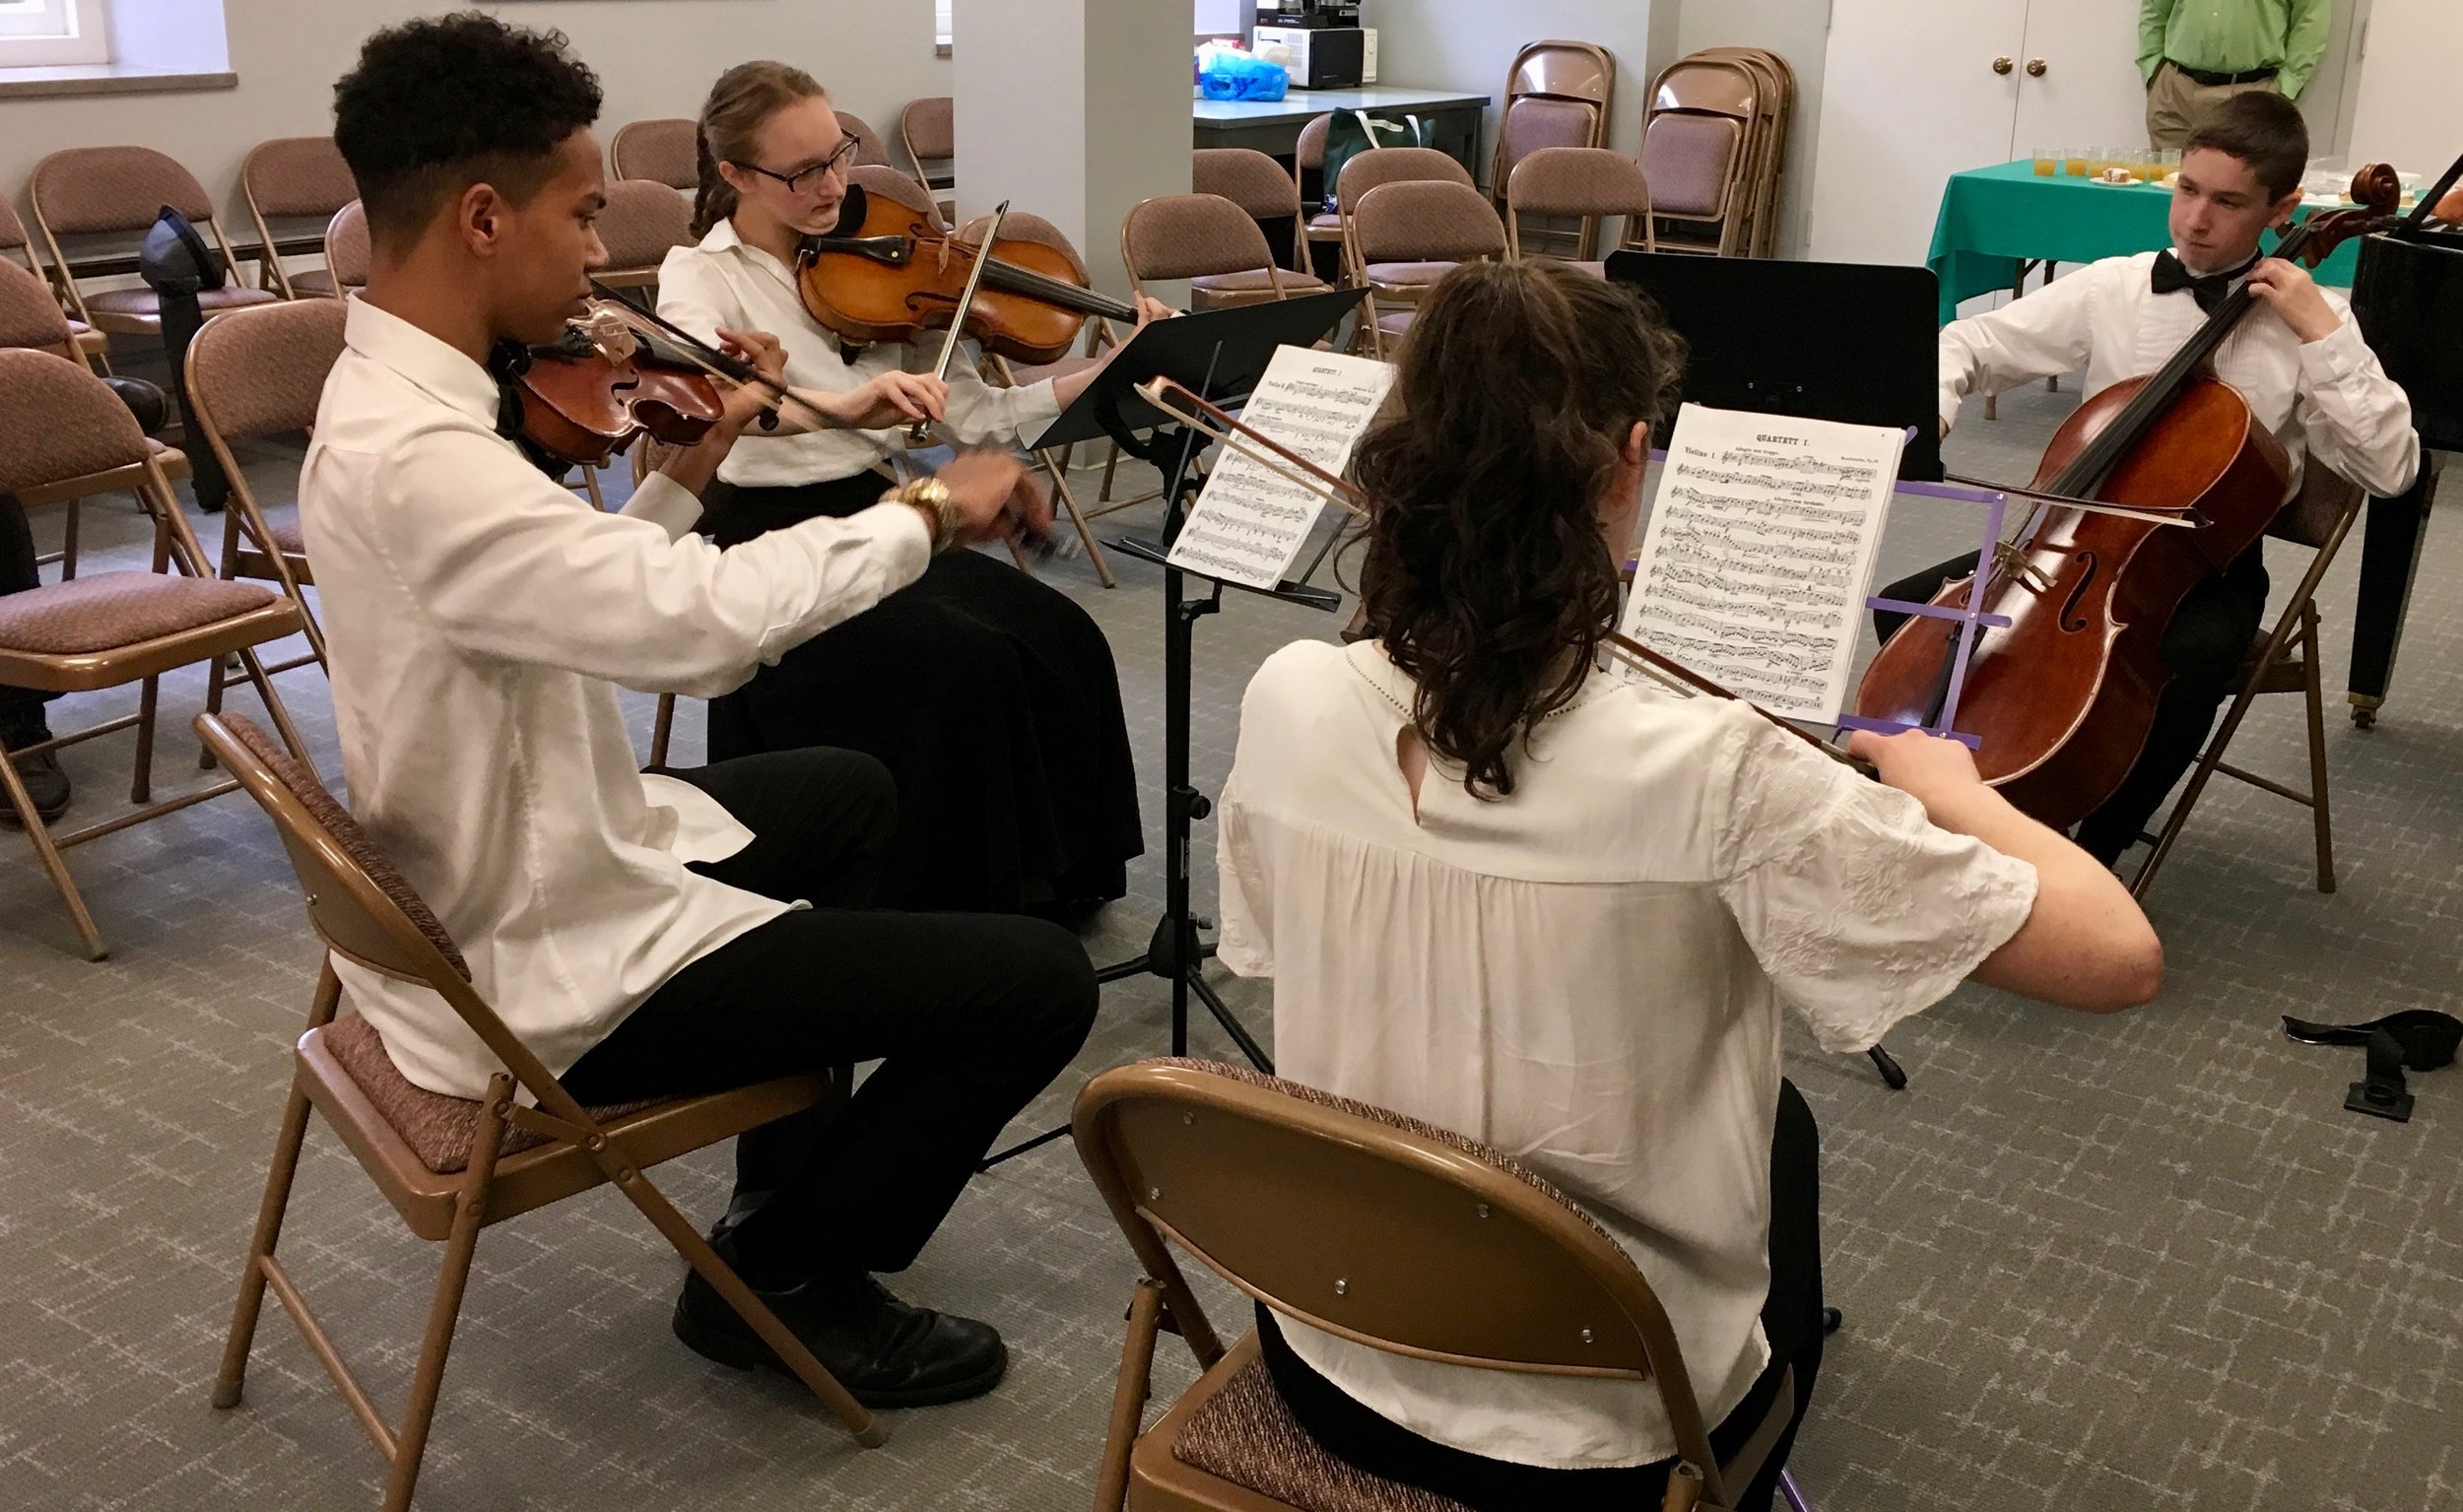 Fox Chapel Presbyterian Church - Sunday, May 12, 2019Two of our Saturday YC2 groups performed before morning worship at Fox Chapel Presbyterian Church as their Spring Recital. Pictured below, the Hoppledom Quintet - Pearl, Henry, Odette, Nyier, and Lincoln; and the Strings of Steel Quartet - Agatha, Dai'Quon, Odette, and Lincoln. Both groups are coached by PSO violinist Irene Cheng.